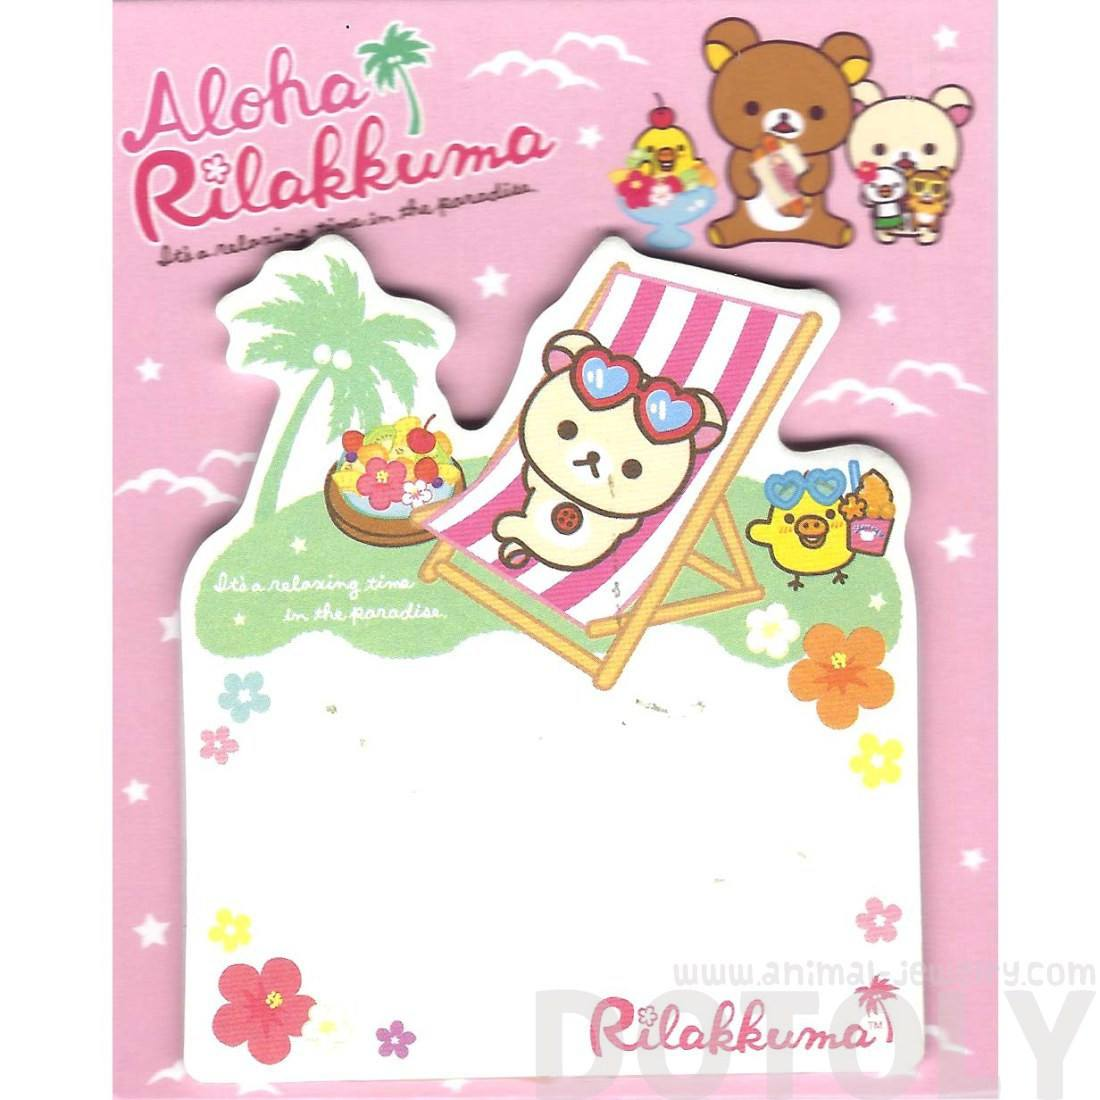 White Teddy Bear on a Beach Chair Shaped Adhesive Post-it Memo Pads